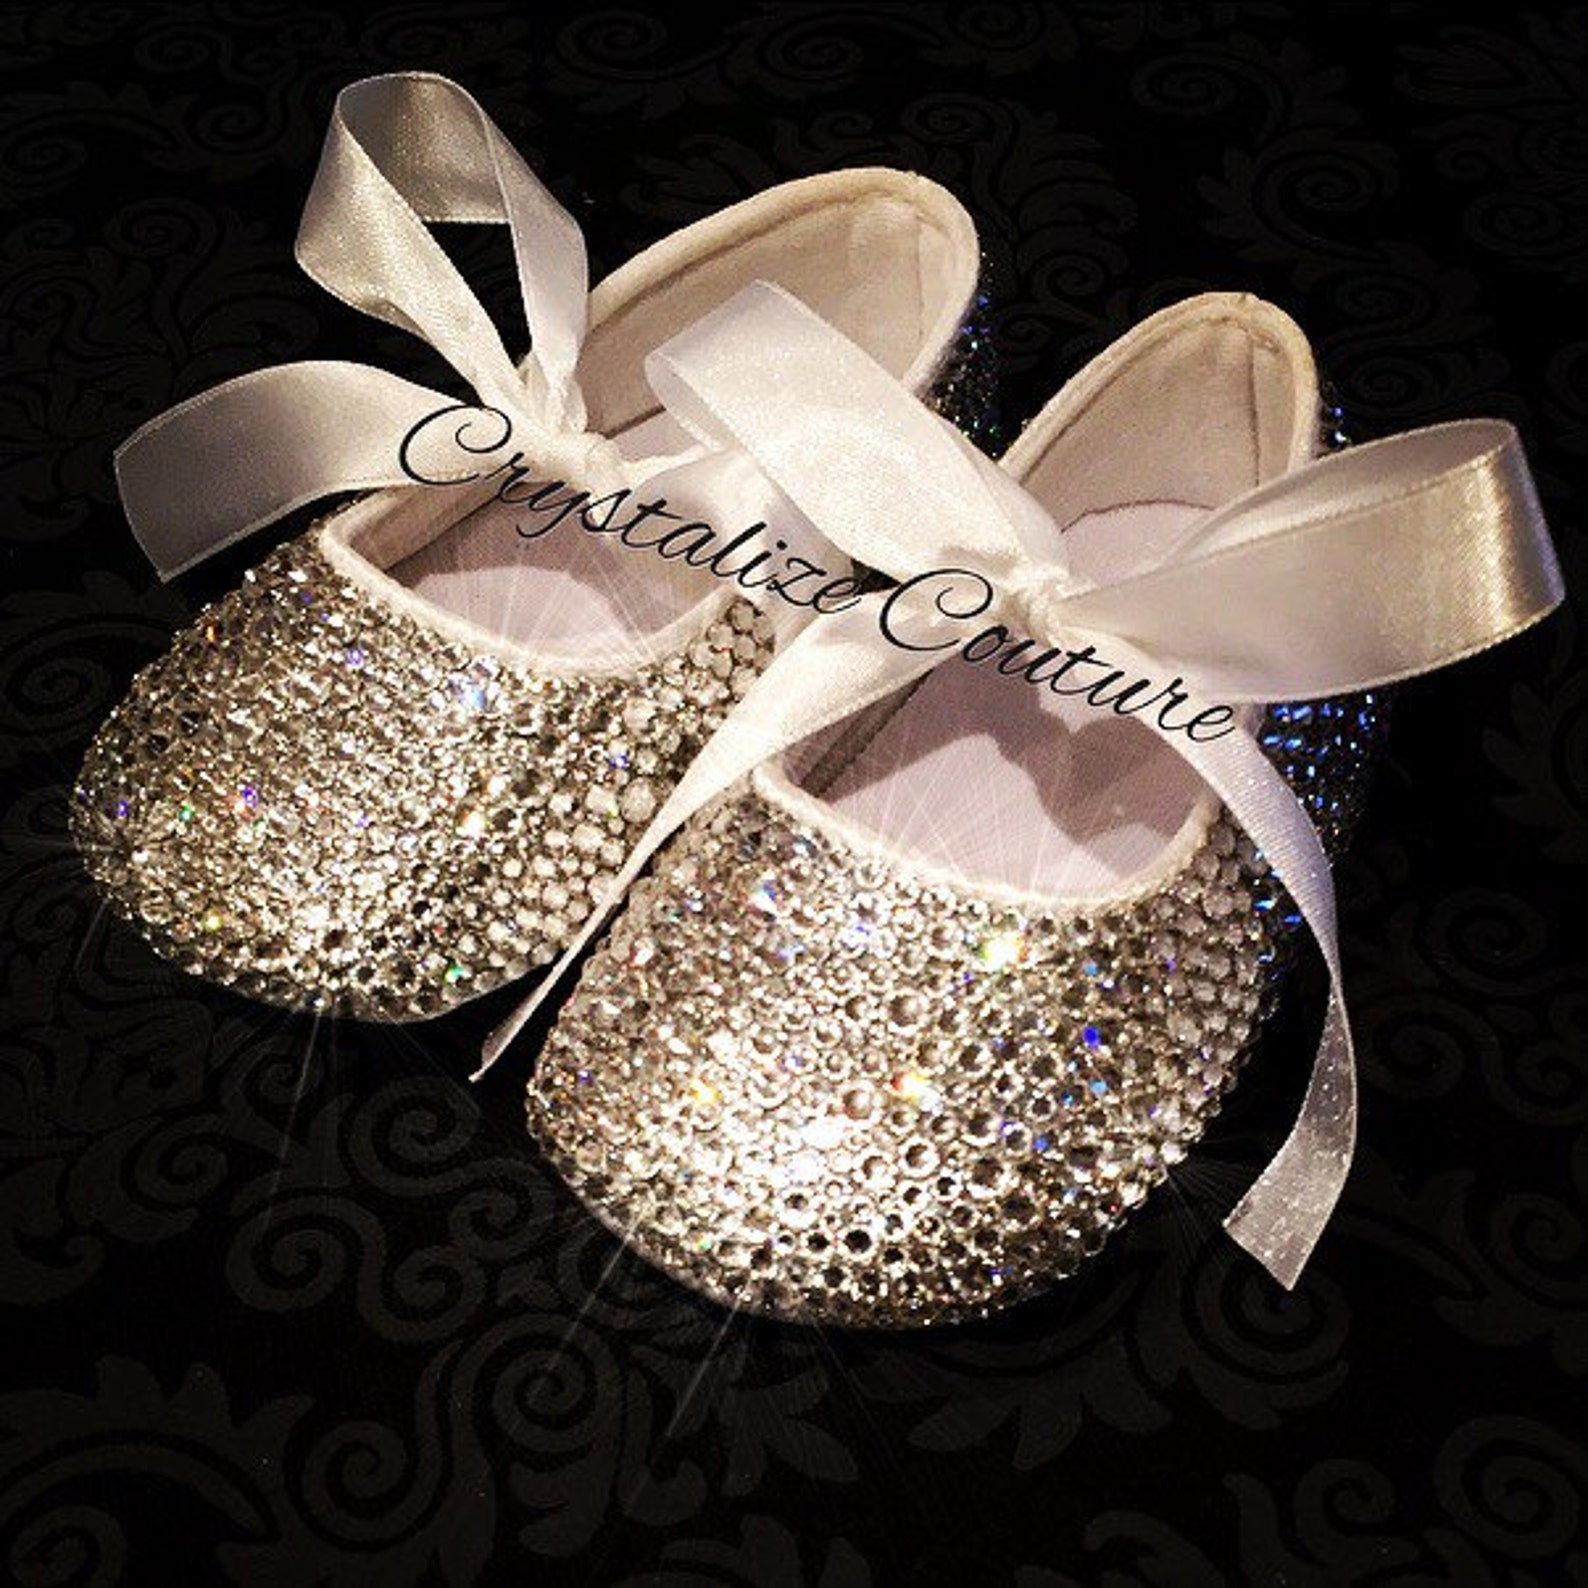 baby flats embellished in swarovski crystals, perfect for christening or birthday, ballet flats, baby booties, baby shoes, baby